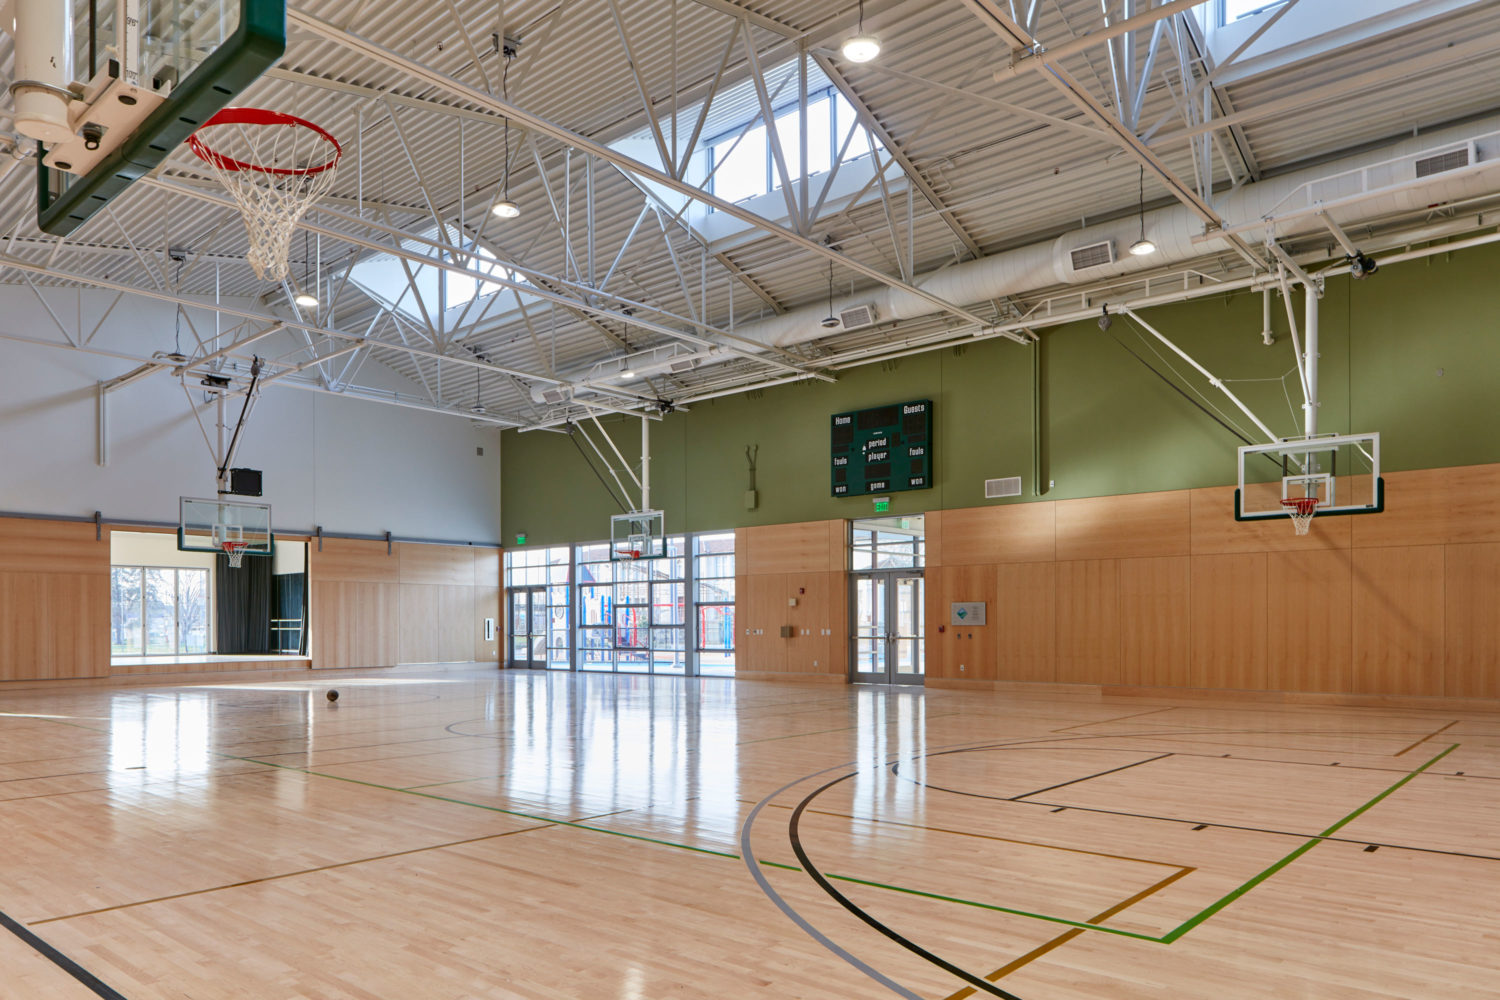 Golden Gate Recreation Center